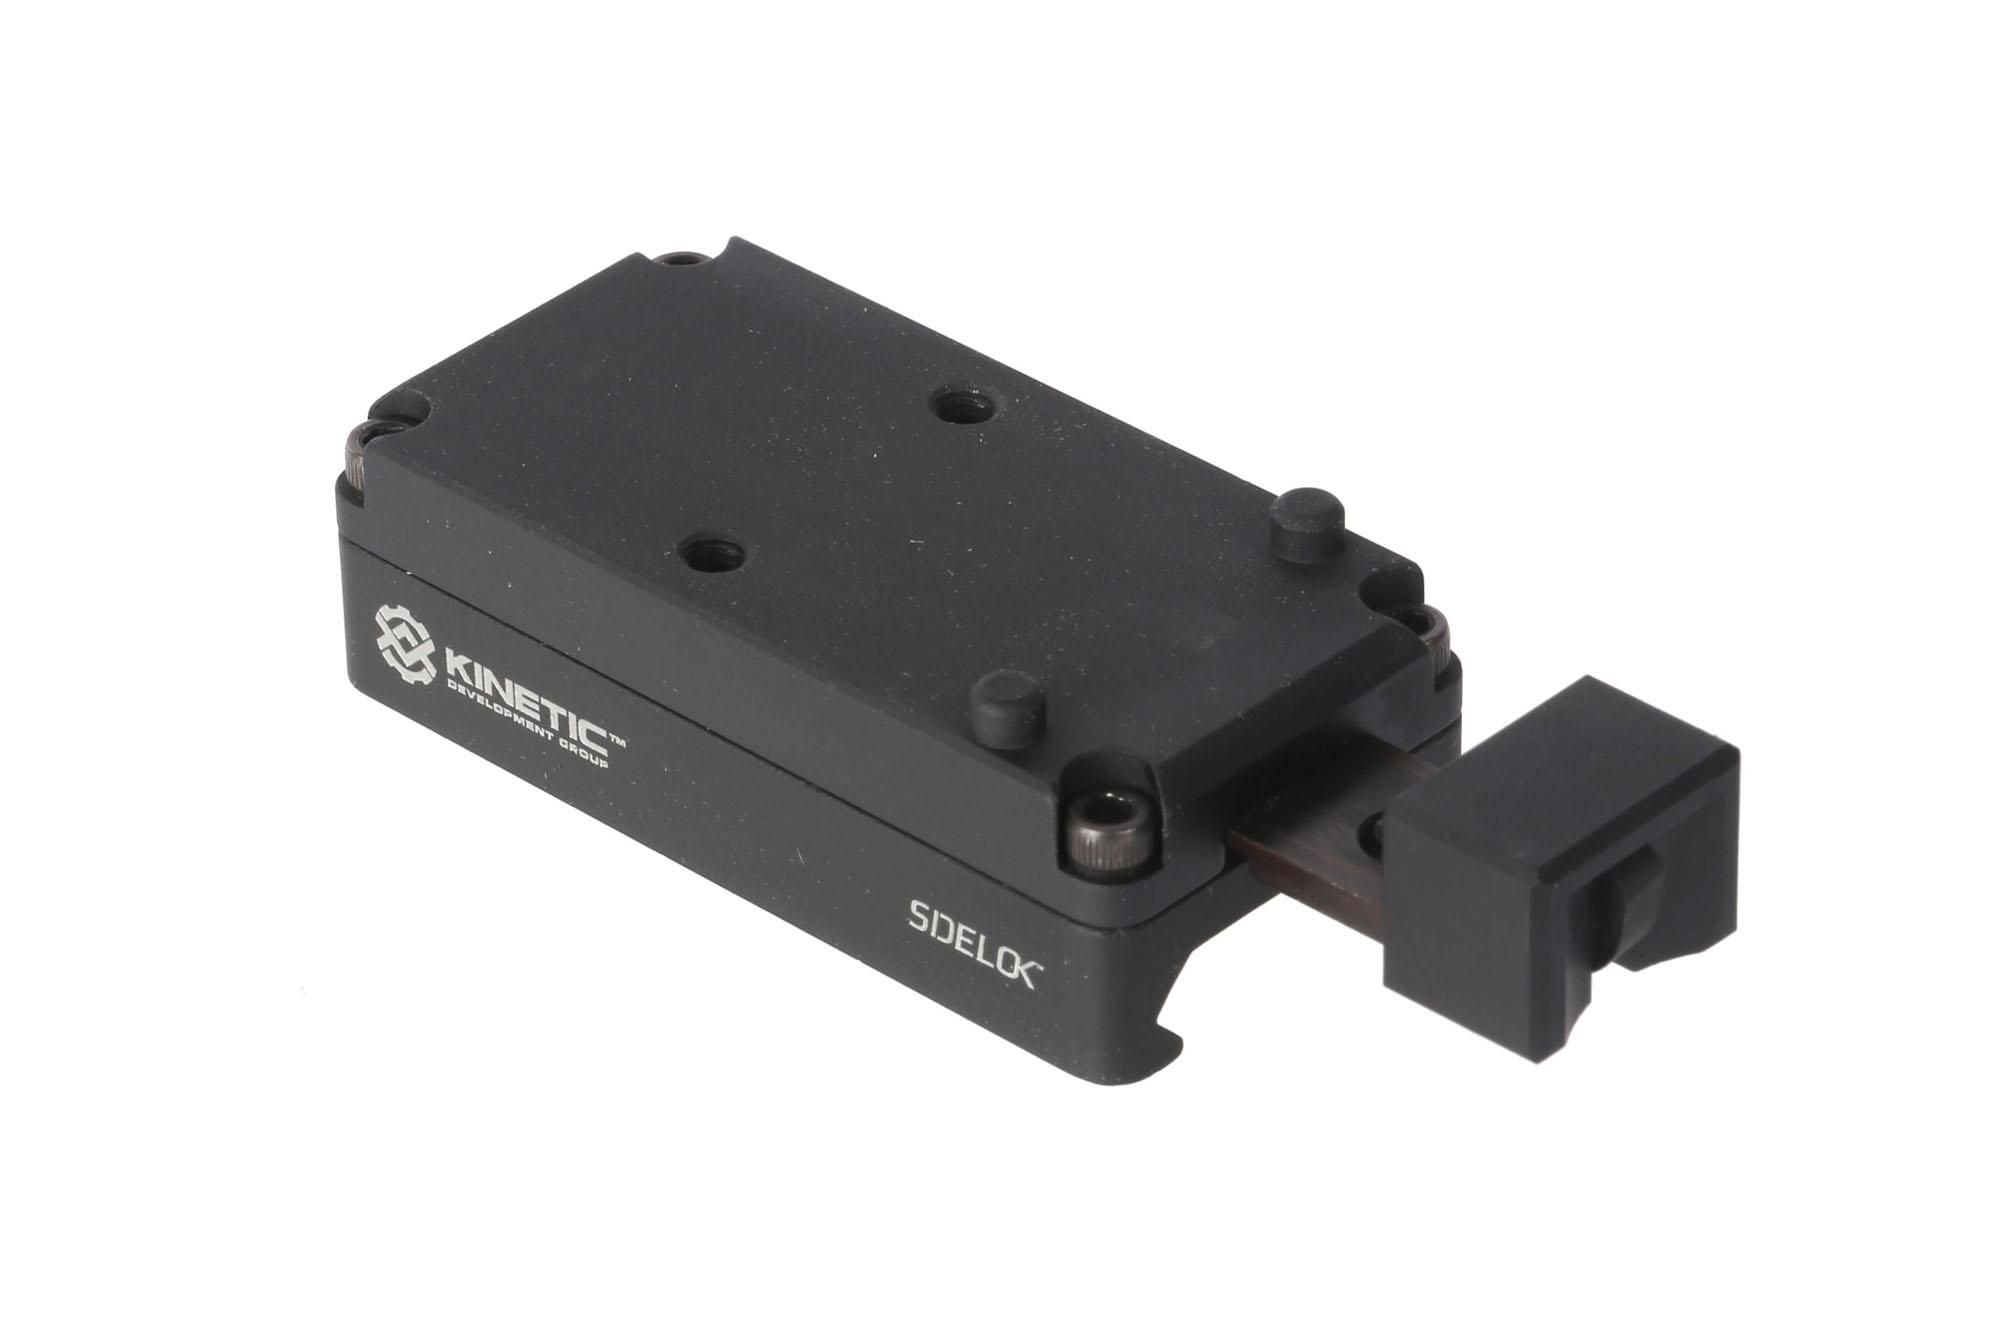 Kinetic Development Groups SIDELOK Trijicon RMR low mount instantly locks to the rail with a push button release